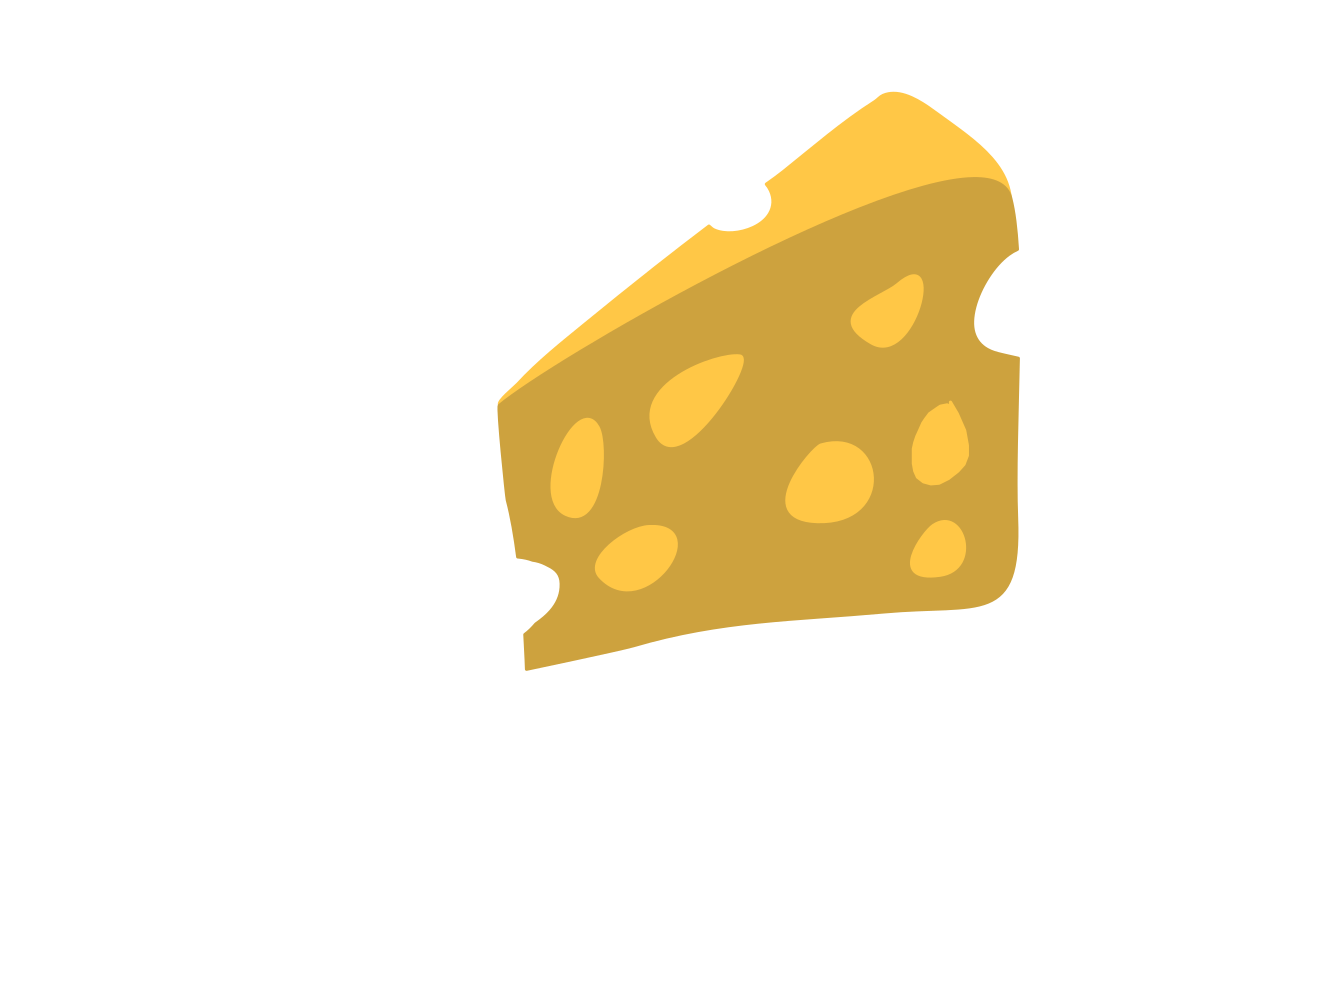 Cheese clipart printable. Onlinelabels clip art